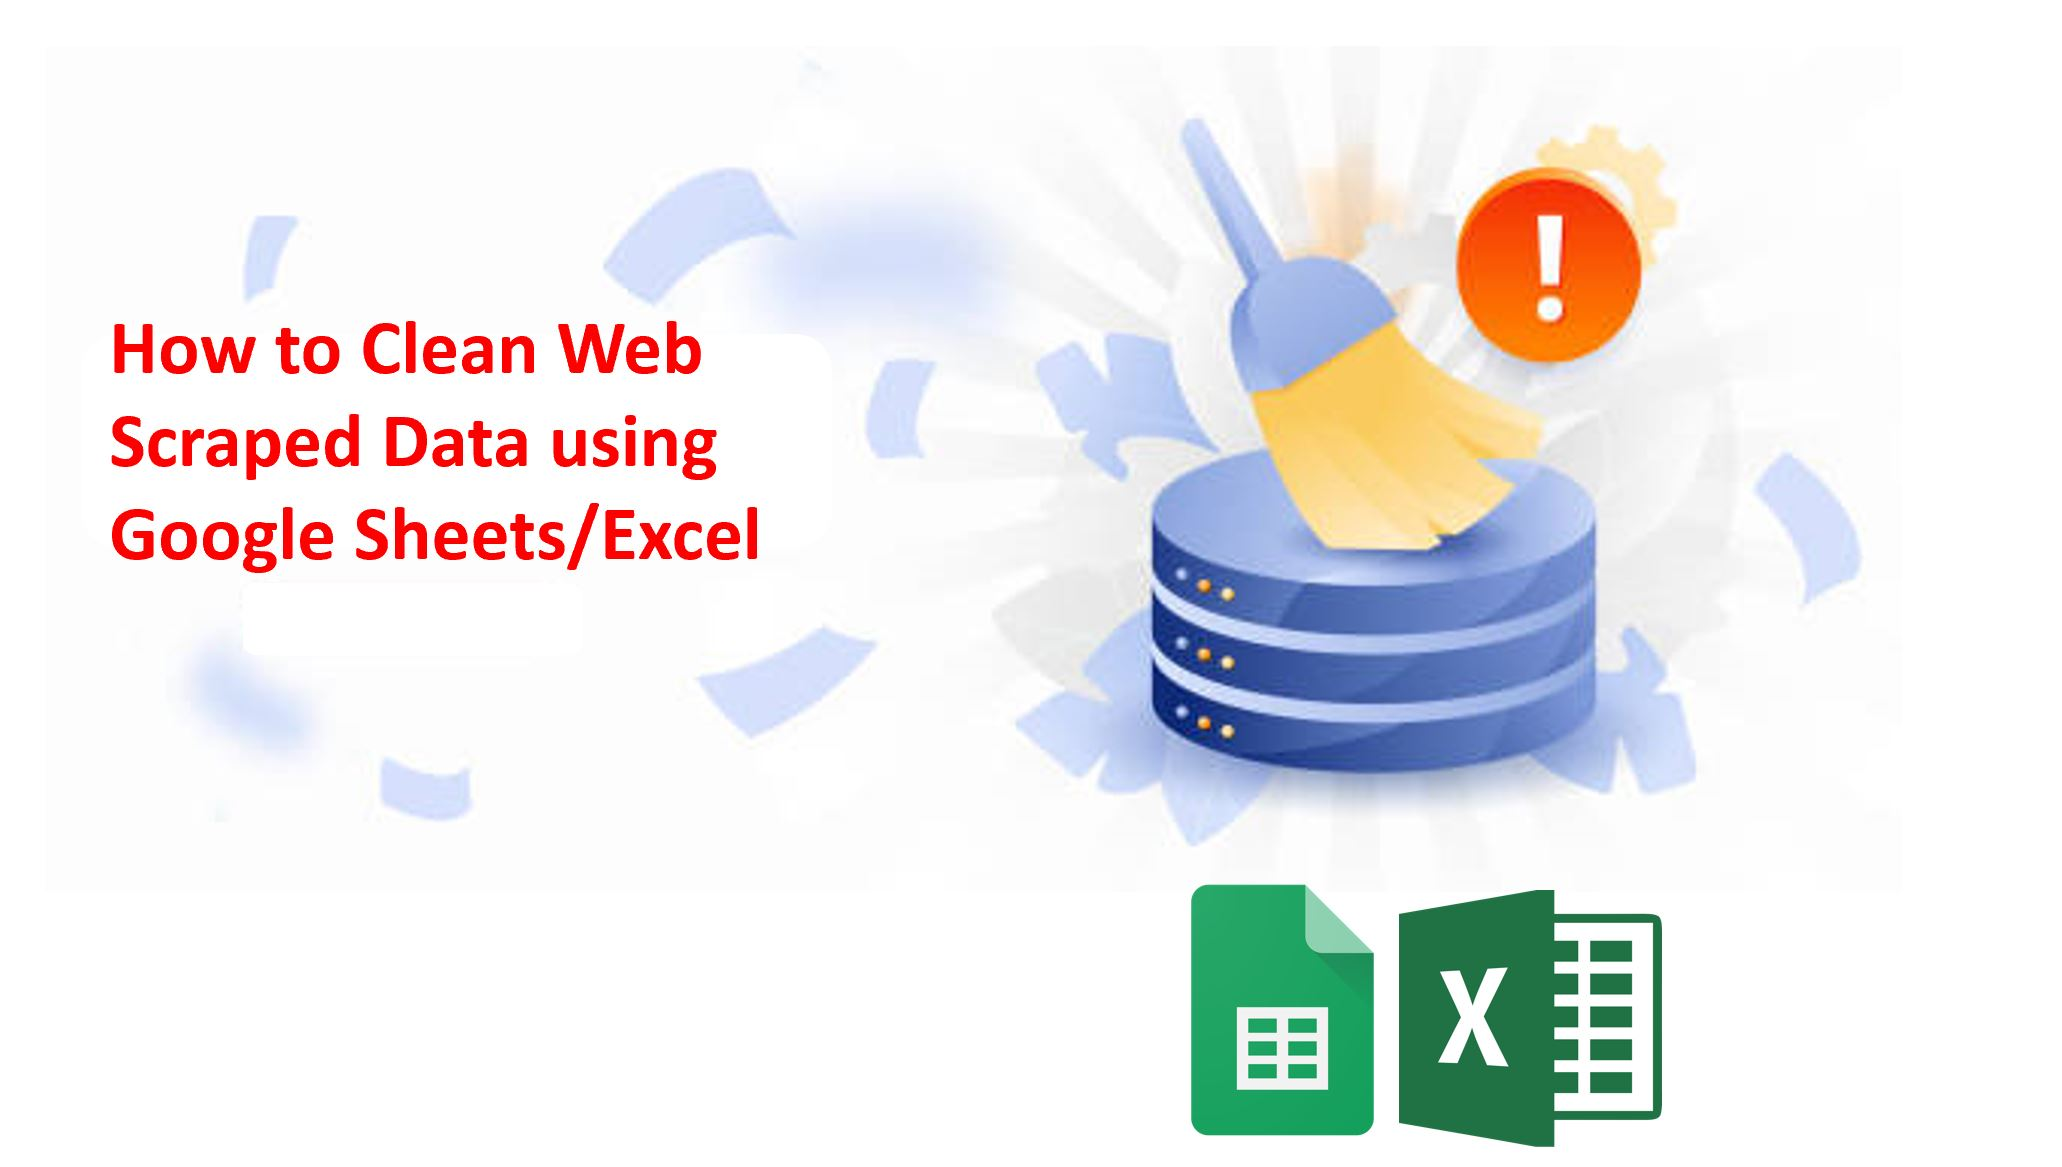 how to clean web-scraped data for analysis using excel or google sheets